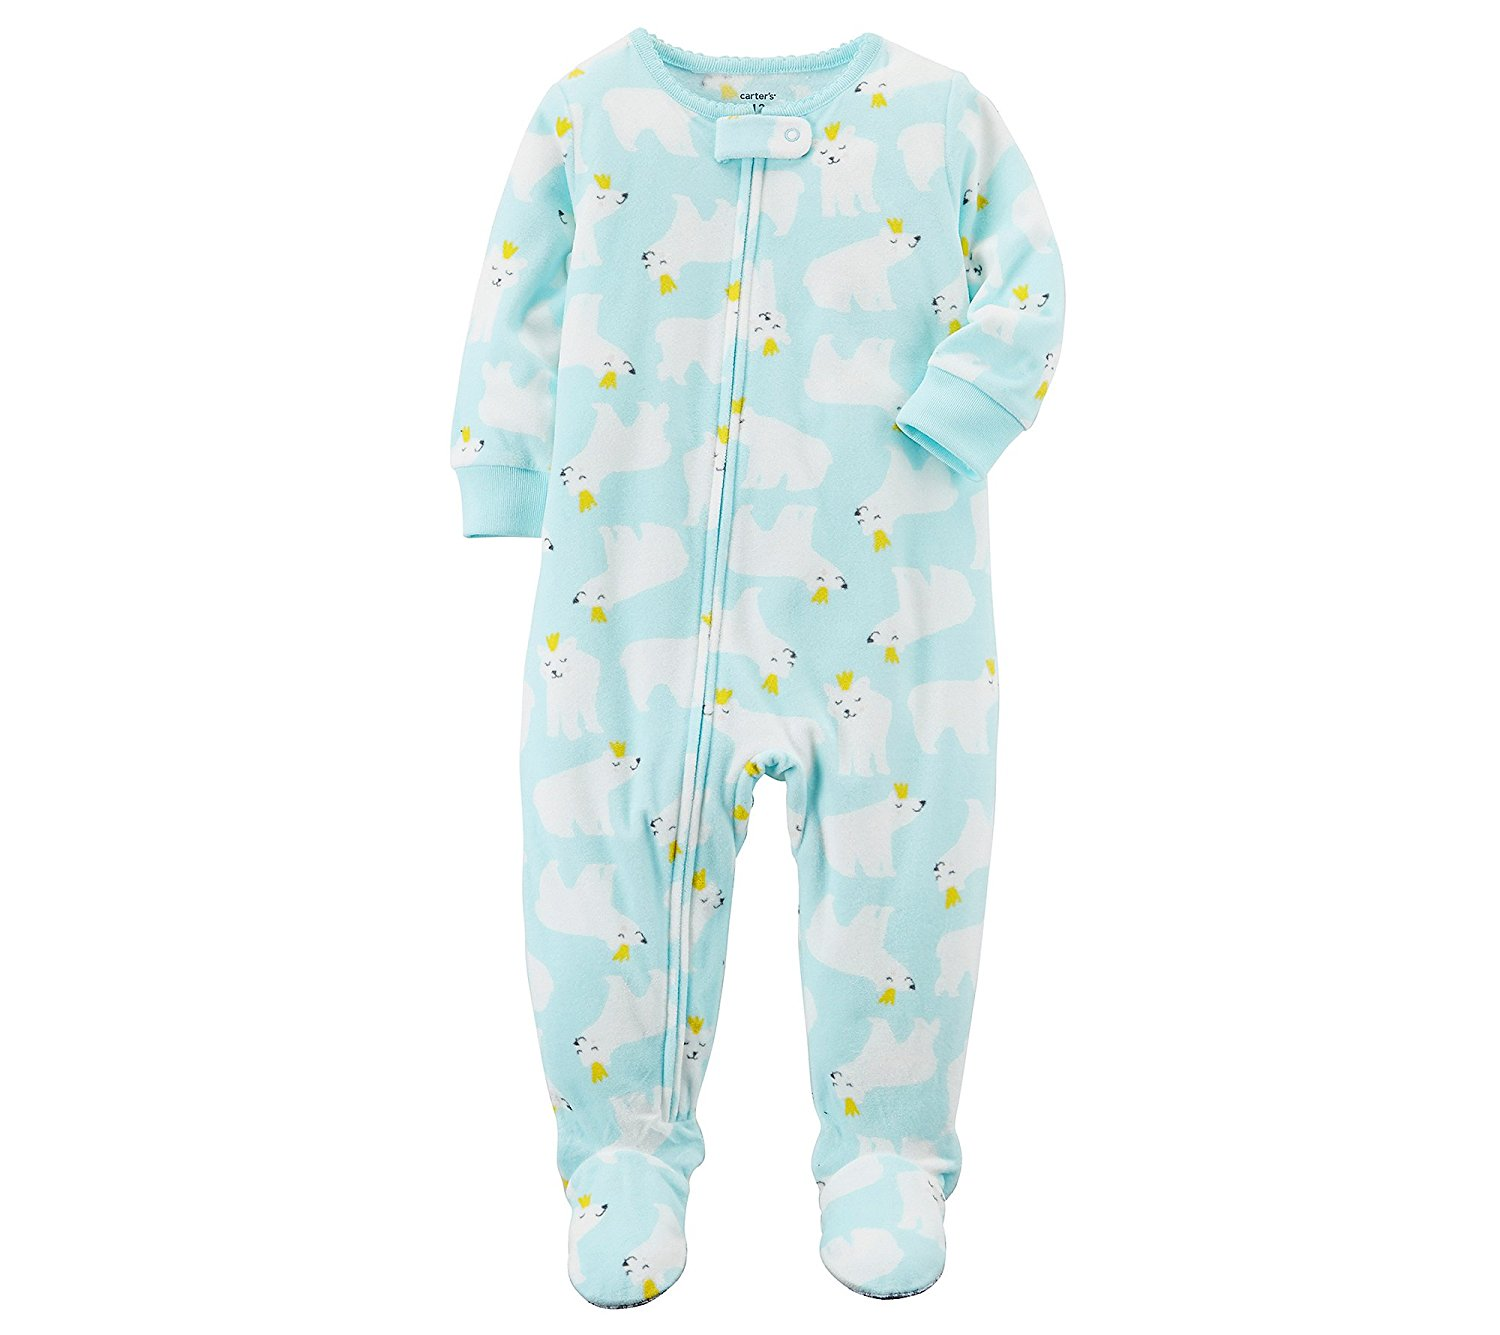 2af764aab9ab5 Cheap Baby Bear Pajamas, find Baby Bear Pajamas deals on line at ...